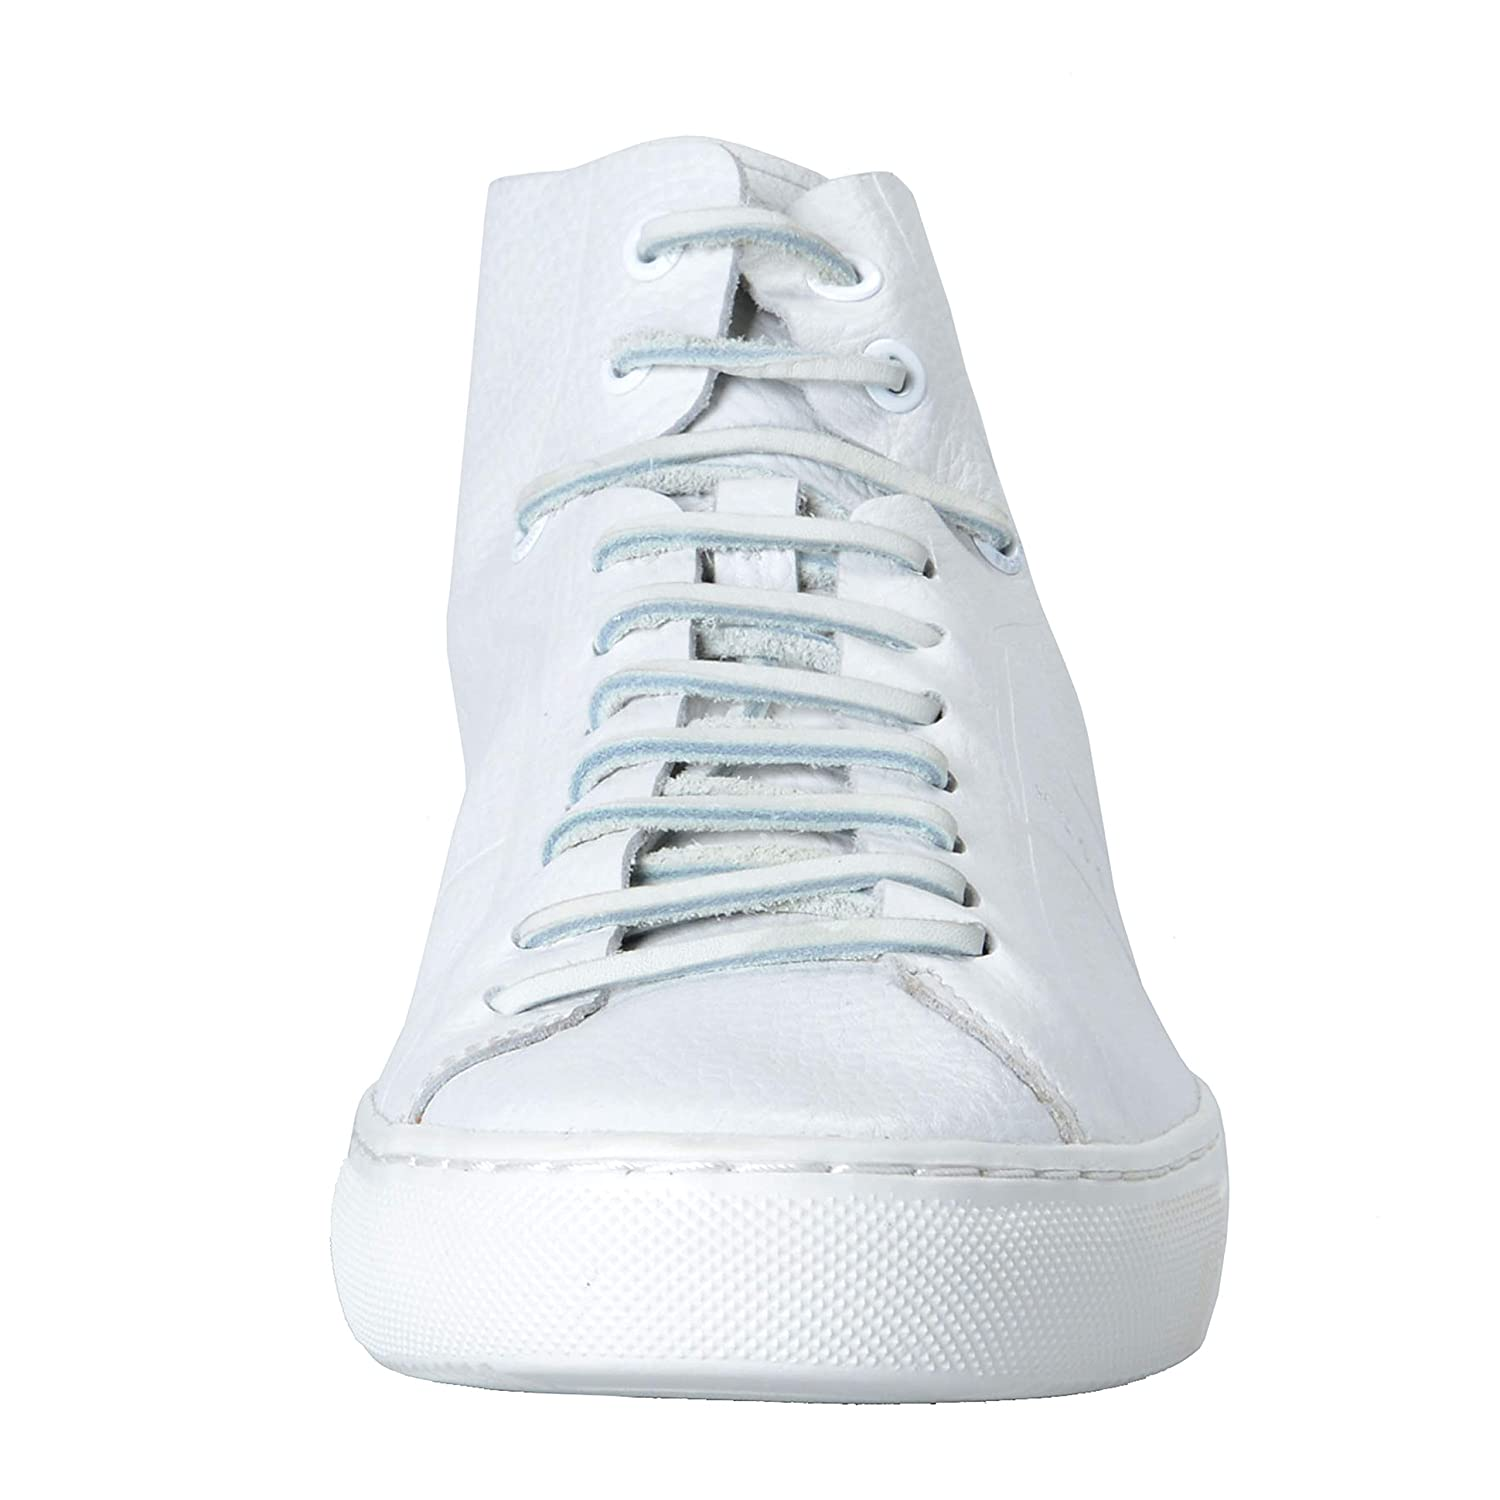 Hugo Boss Mens Enlight/_Hito/_tbem Hi Top Fashion Sneakers Shoes US 9 IT 42 White